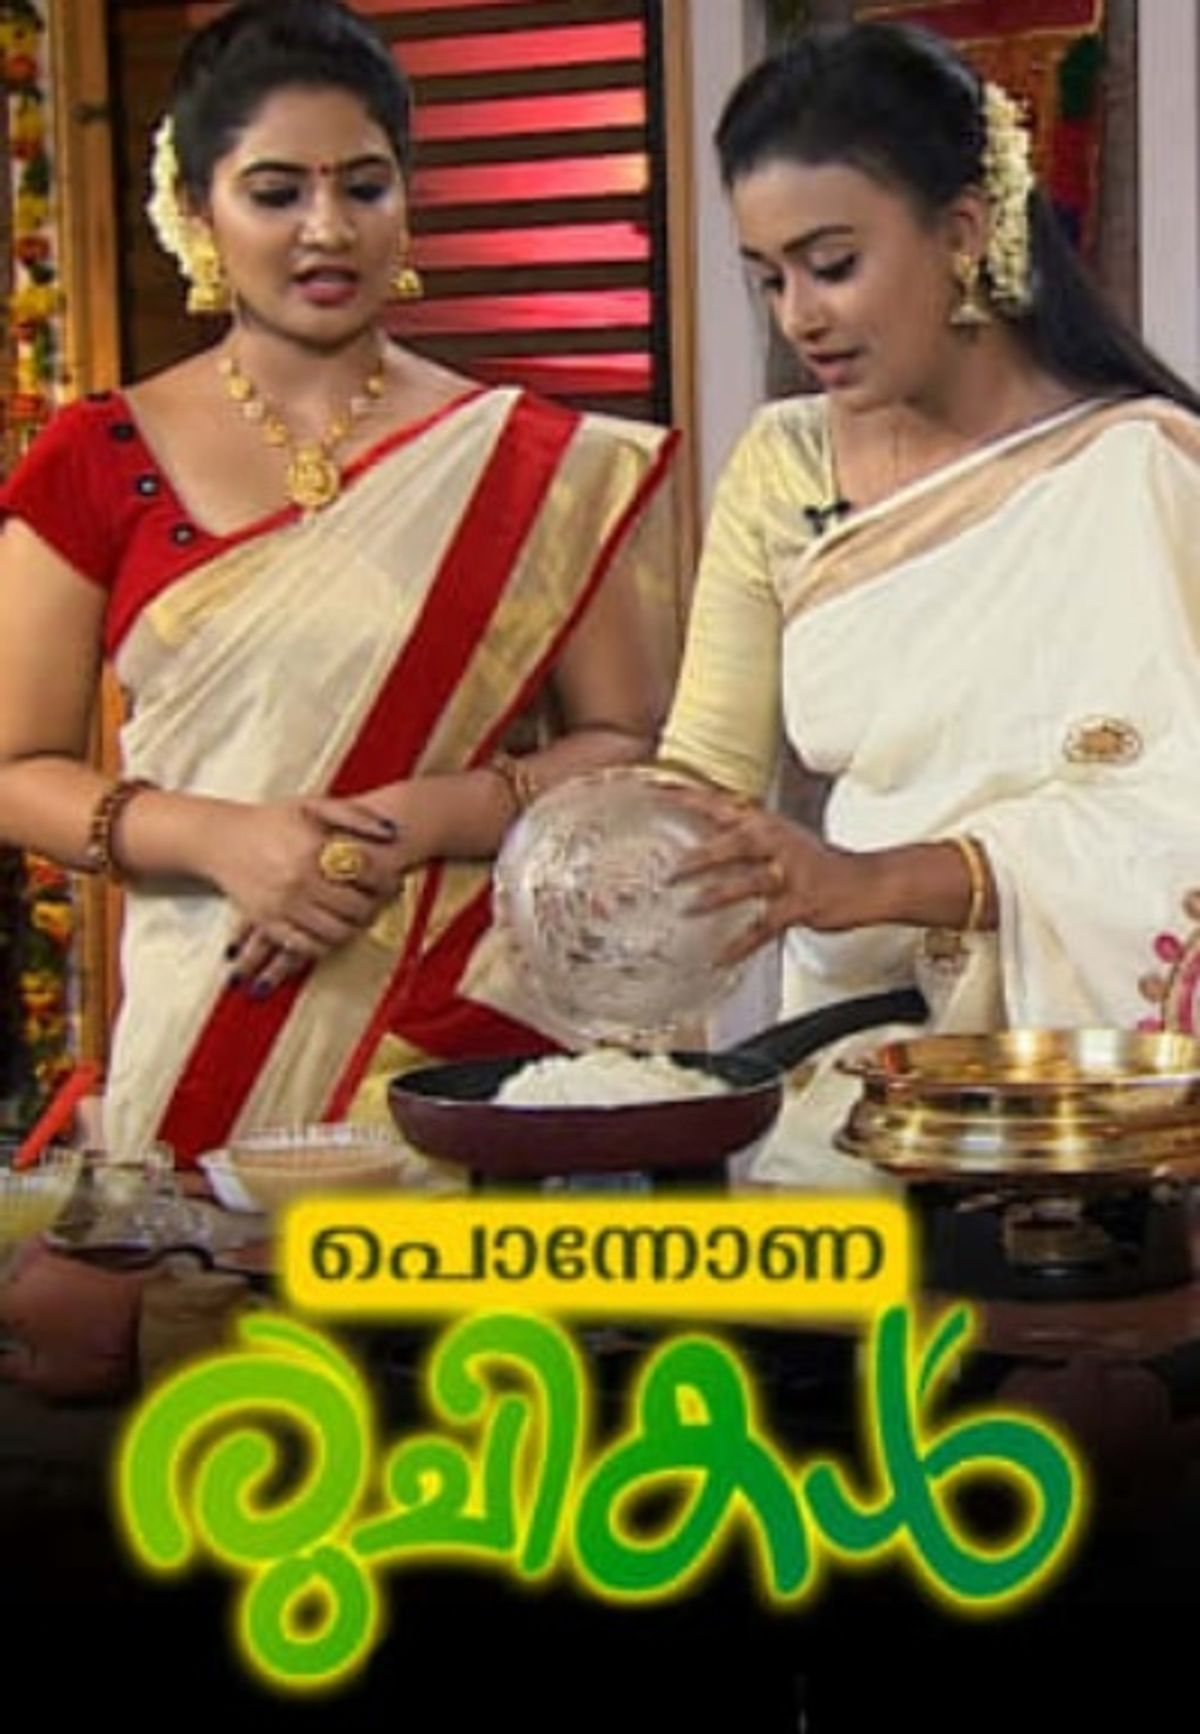 Best Travel And Culture shows in Malayalam